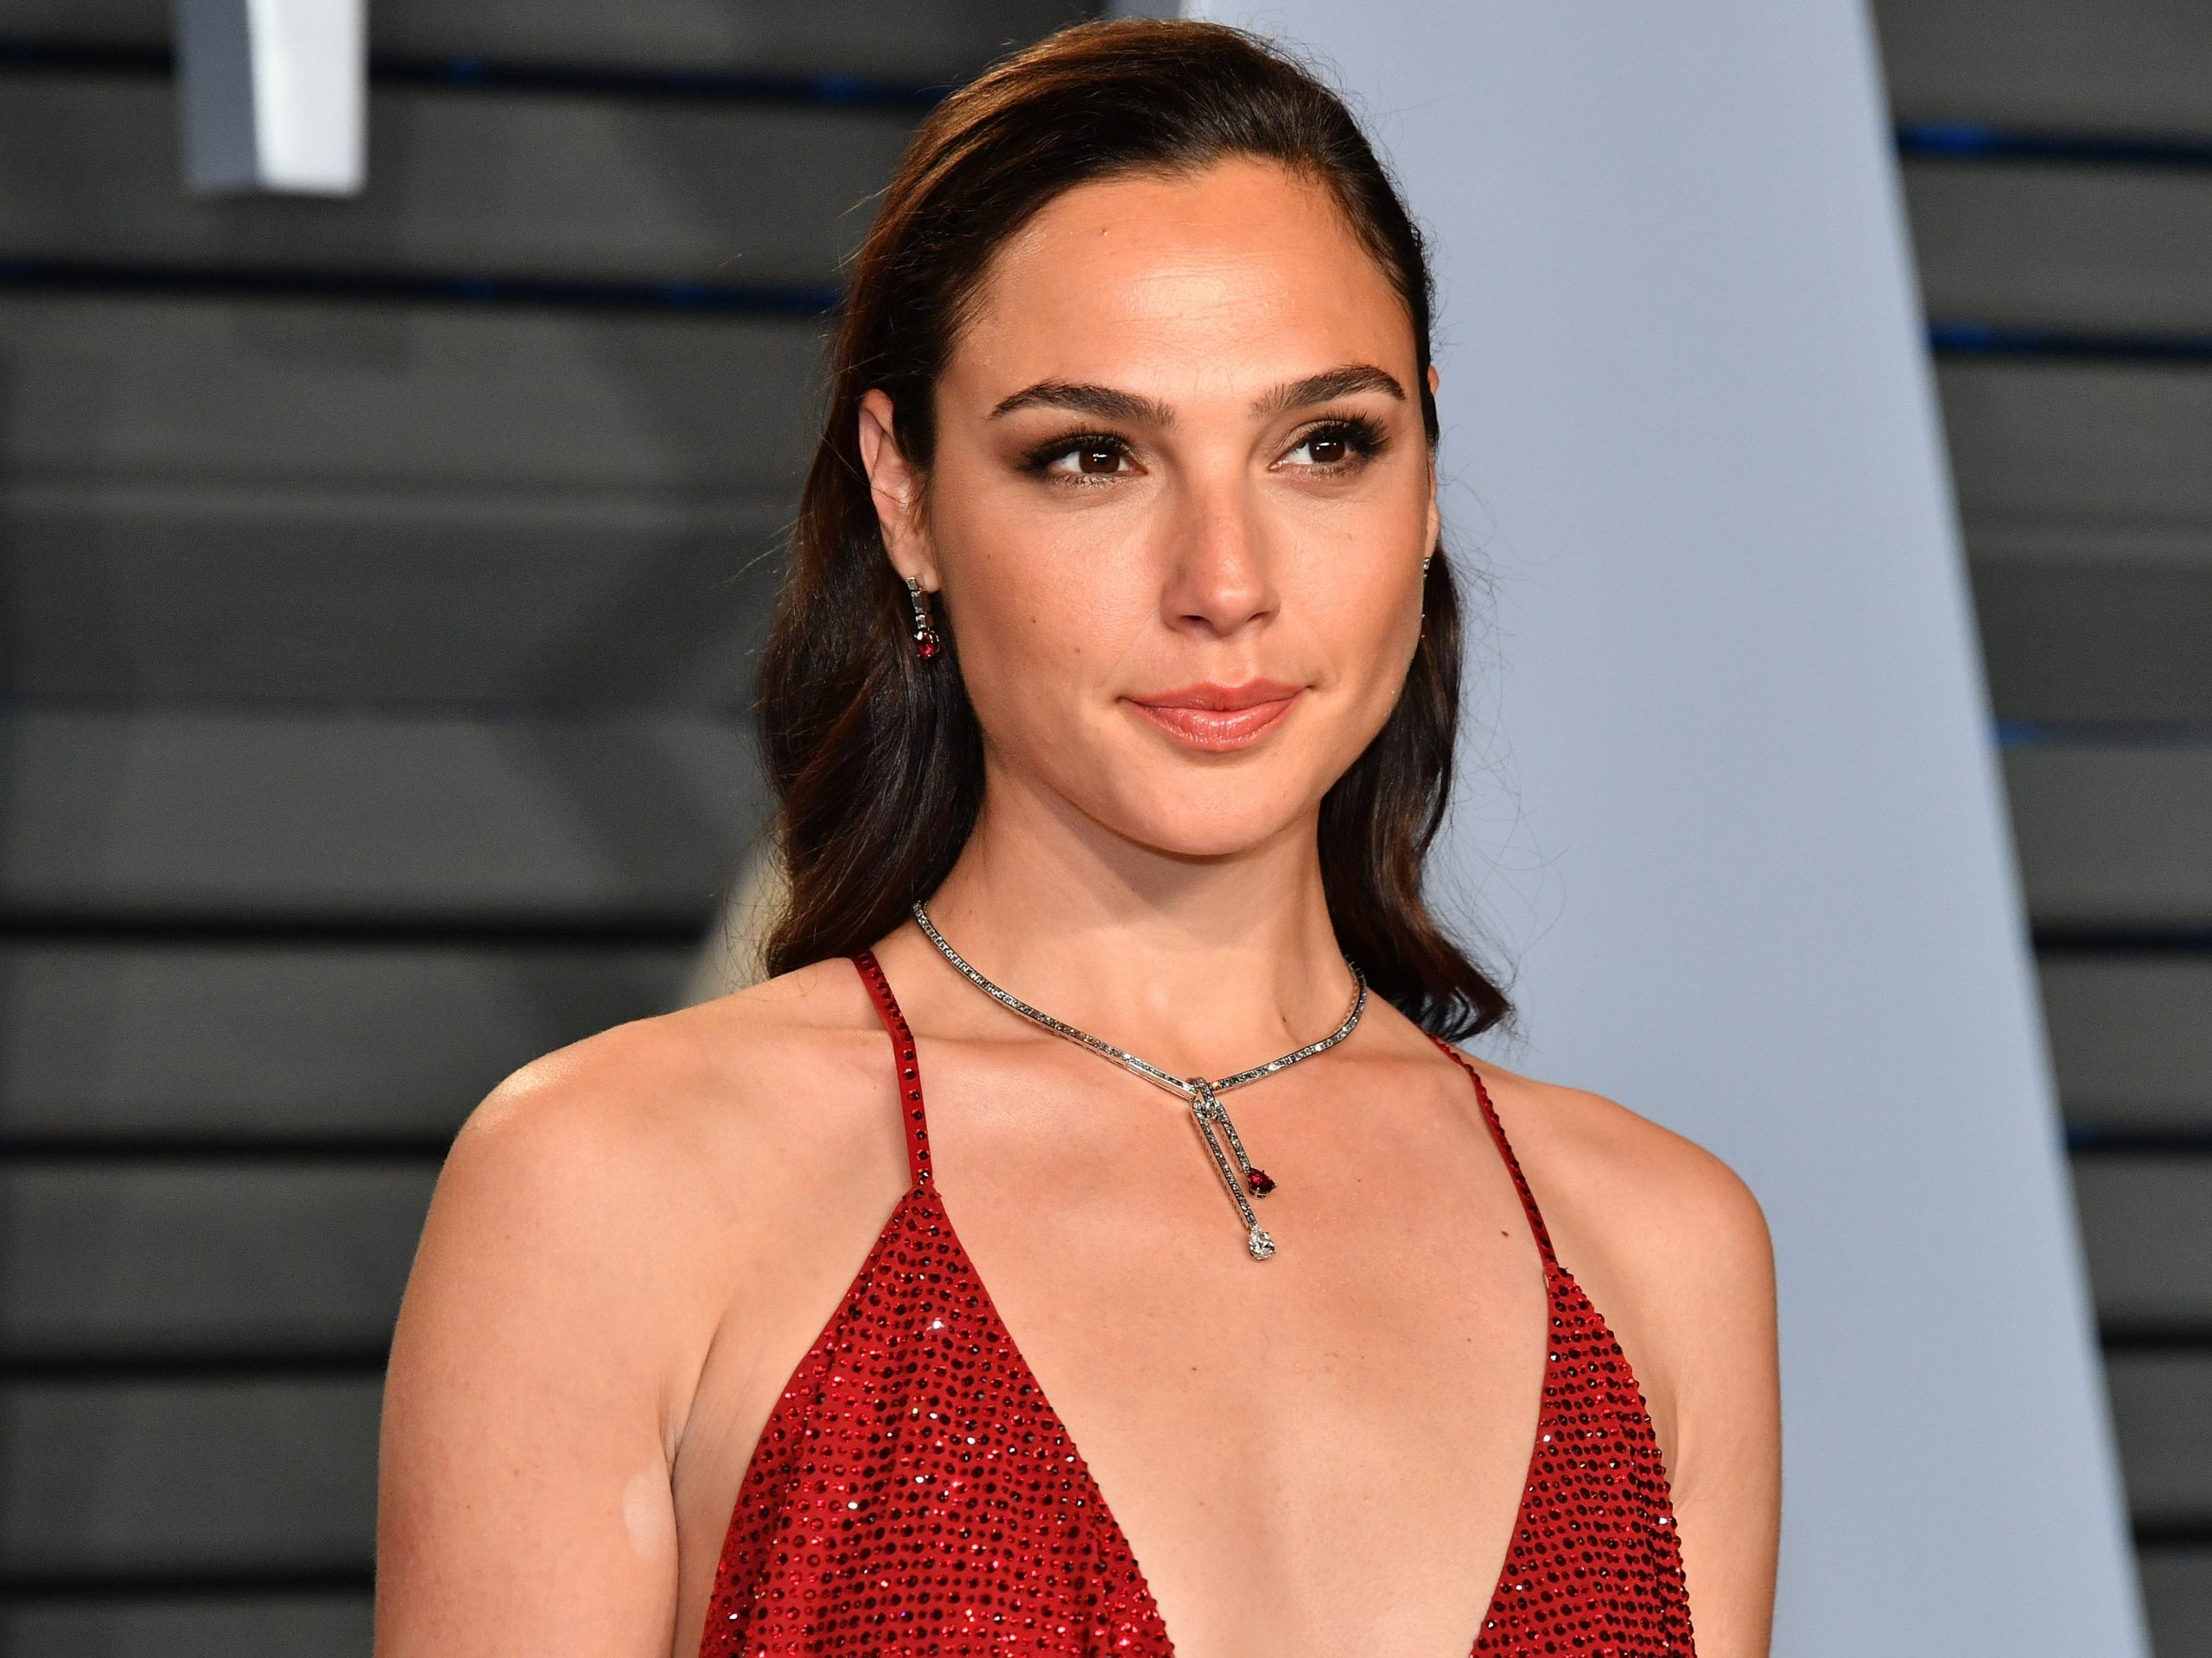 Gal Gadot was interviewed in a Justice League investigation following Ray Fisher's allegations about Joss Whedon